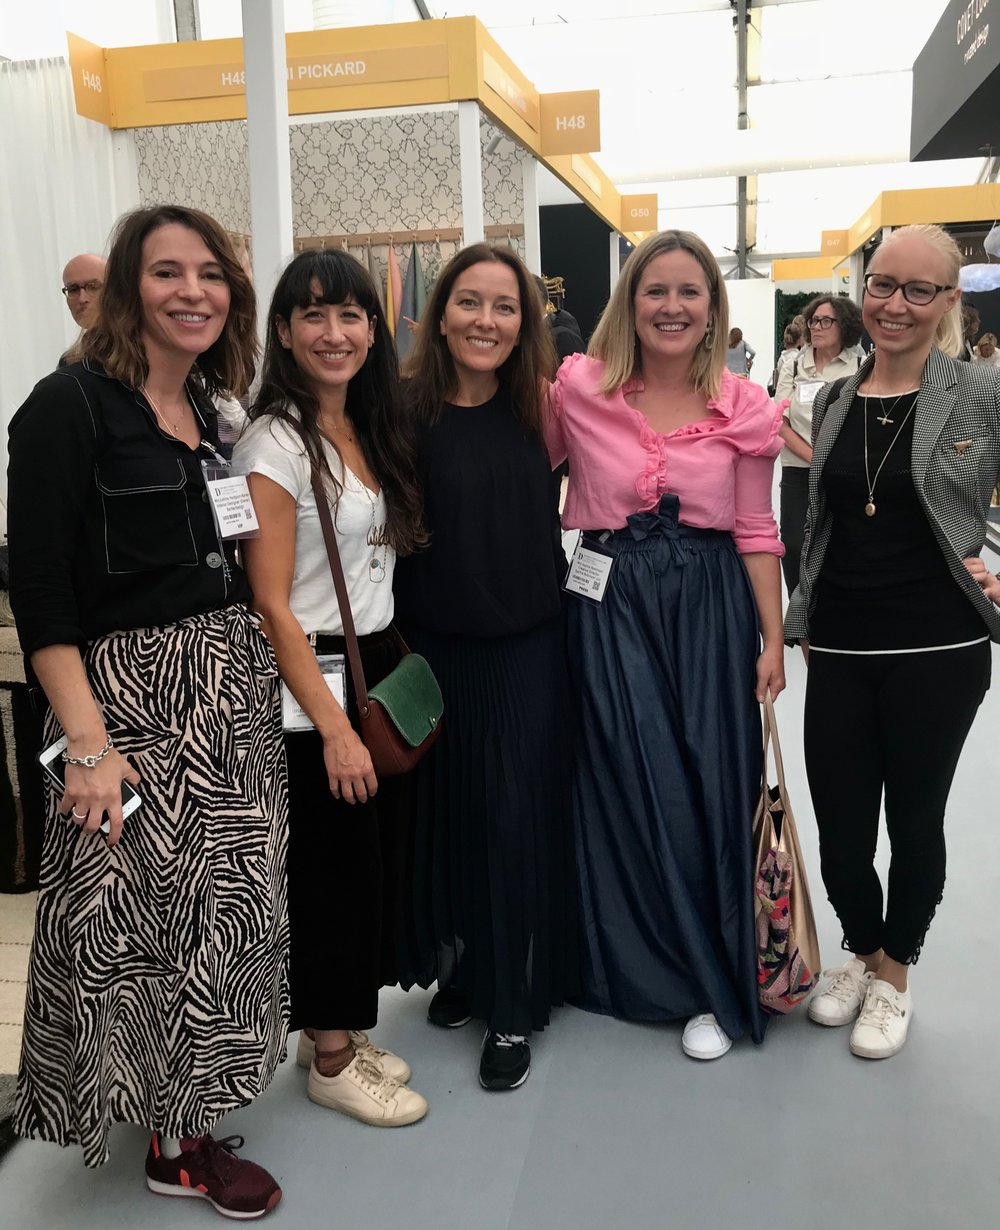 from left to right - IDC members Justine Hodgson-Barker of  Barker   Design , Emma Gurner of  Folds Inside , Fiona Duke of Fiona Duke Interiors (Me!!) ,  Sophie Robinson  and Pia Pelkonen of  Pia Design Consulting